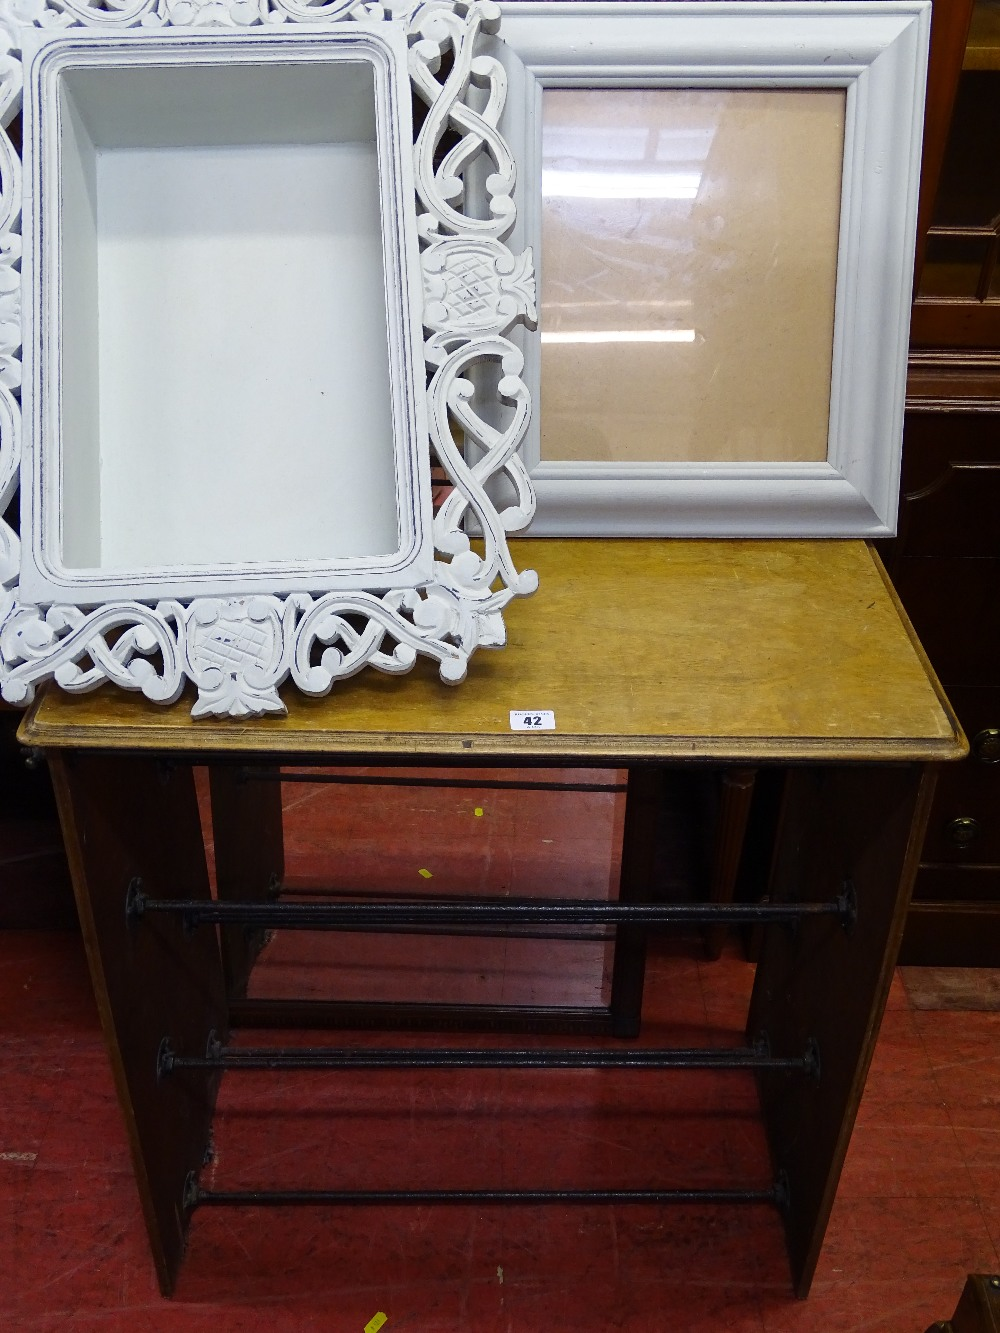 Lot 42 - Vintage shoe rack, fancy framed wall display and a painted picture frame